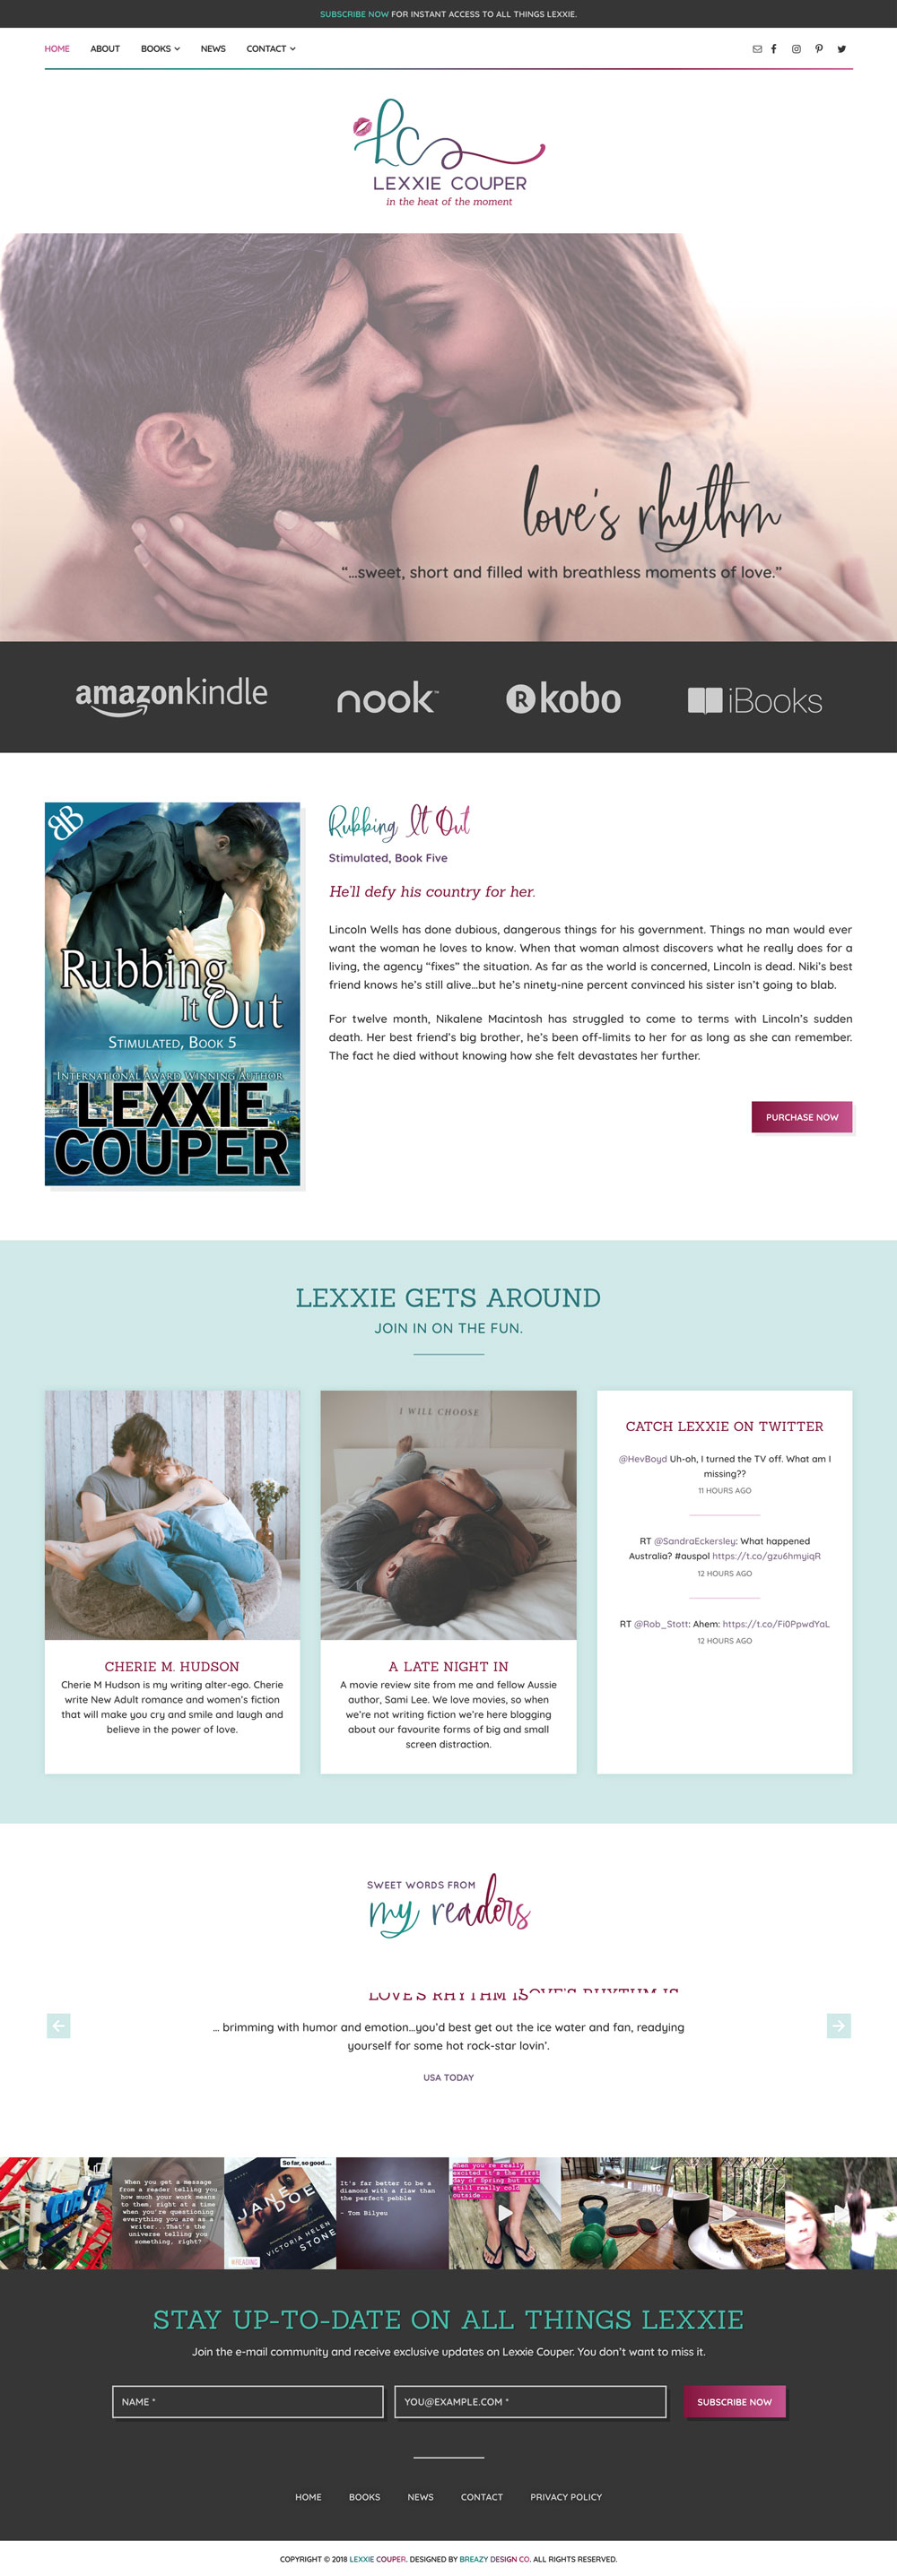 Screenshot of Lexxie Couper's website home page